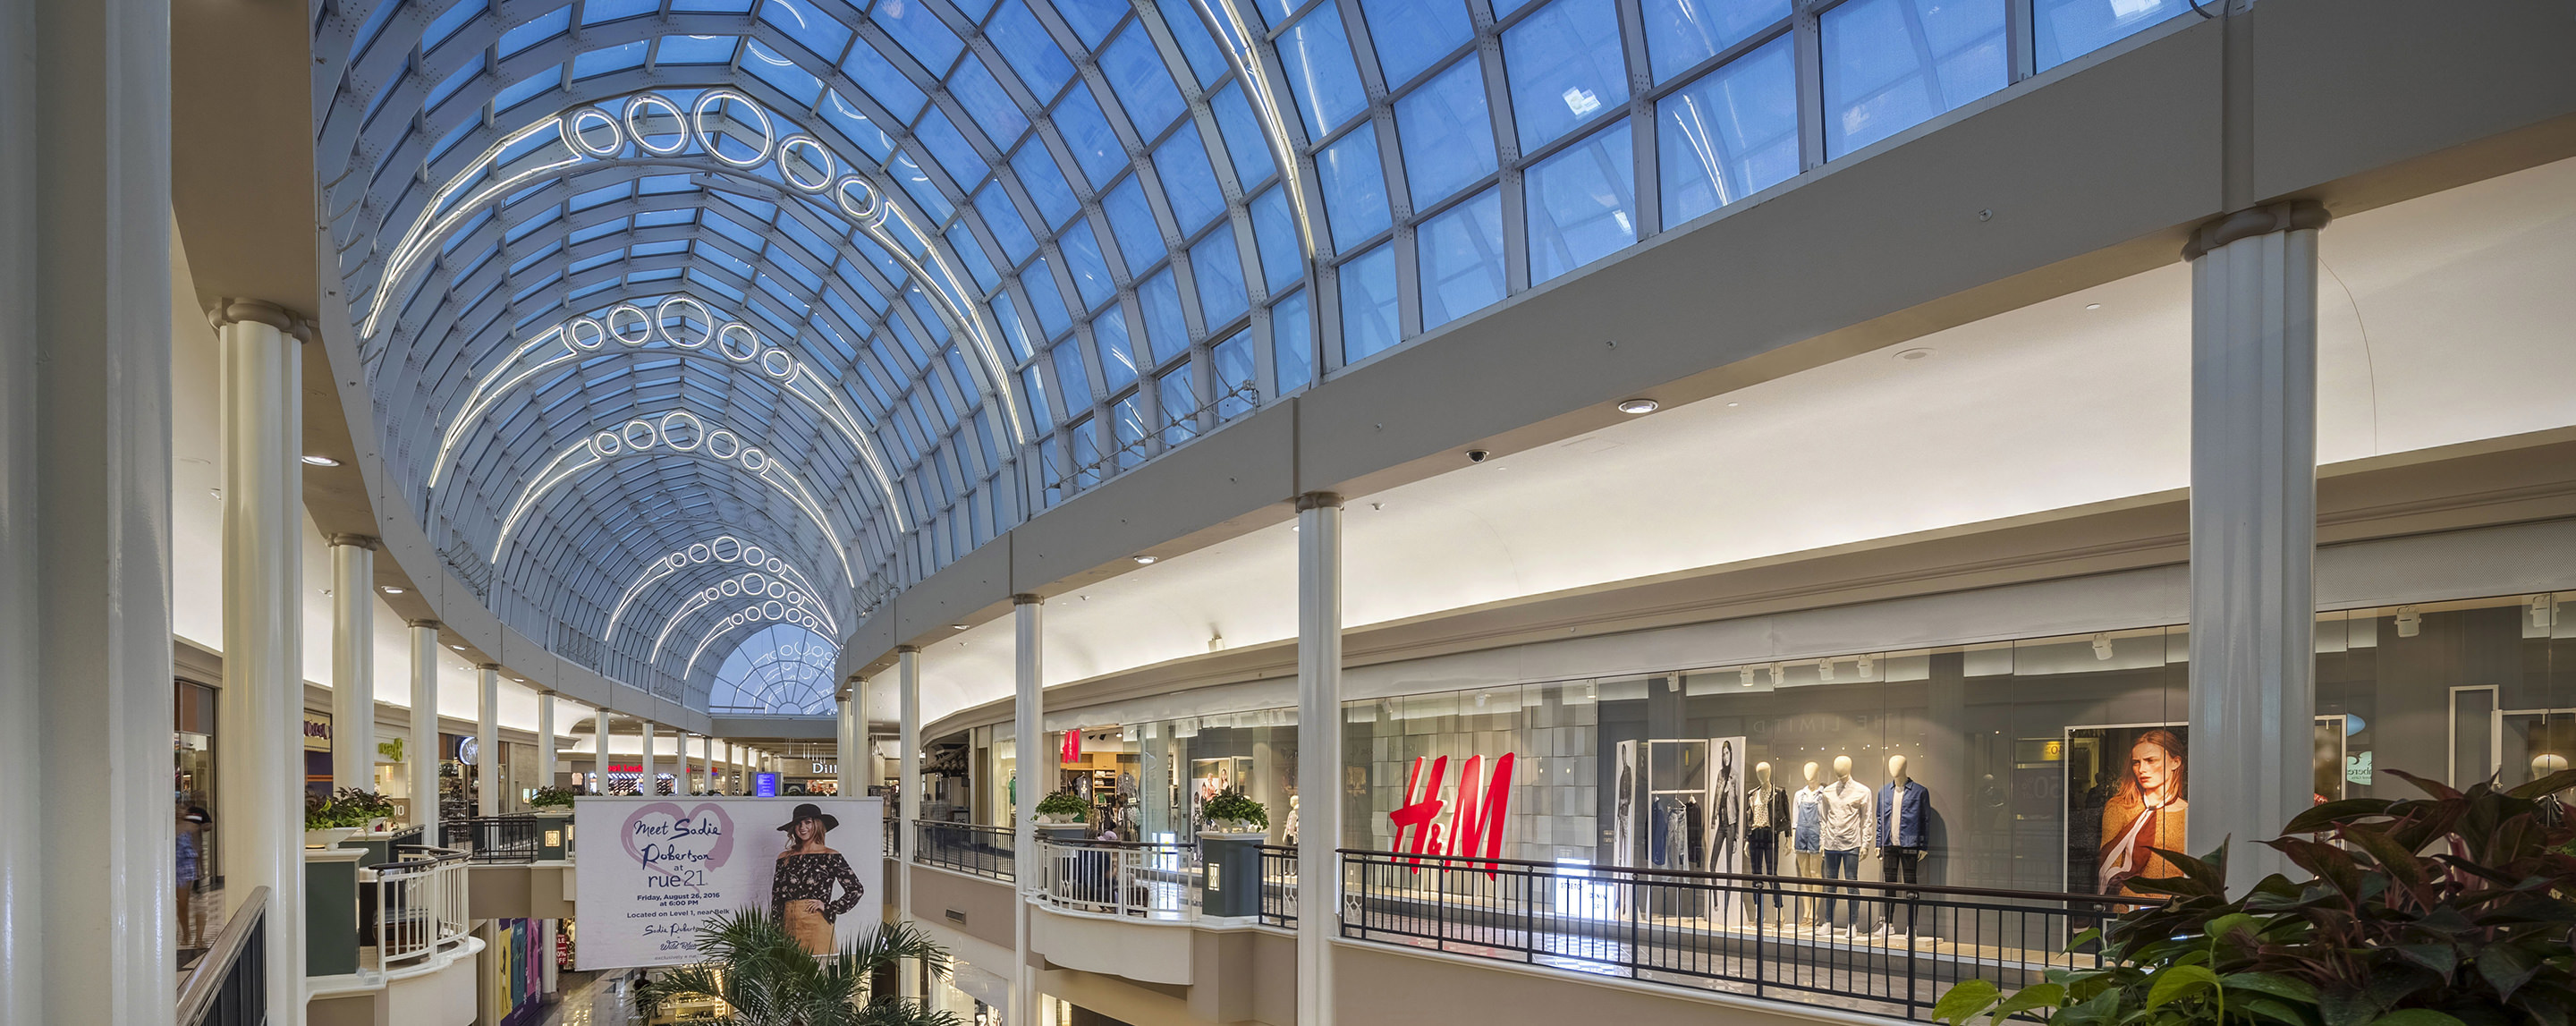 Inside the upstairs of the Carolina Place mall, store fronts show trendy clothing as the sun shines through the class interior roof.